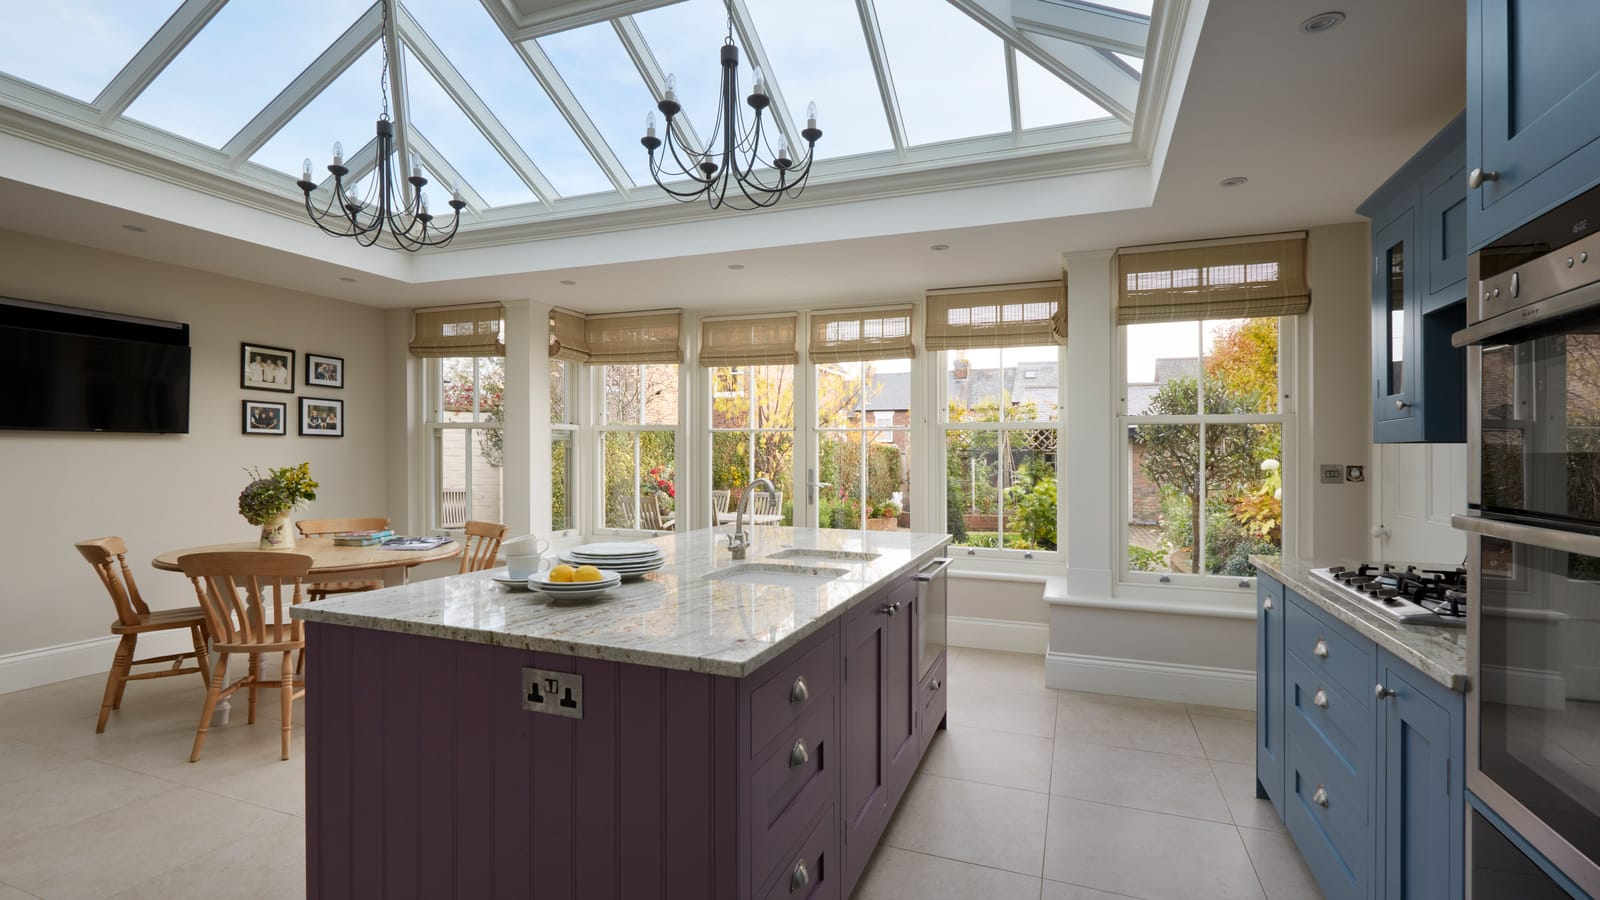 Large Orangery Extension used as Kitchen and Dining Area